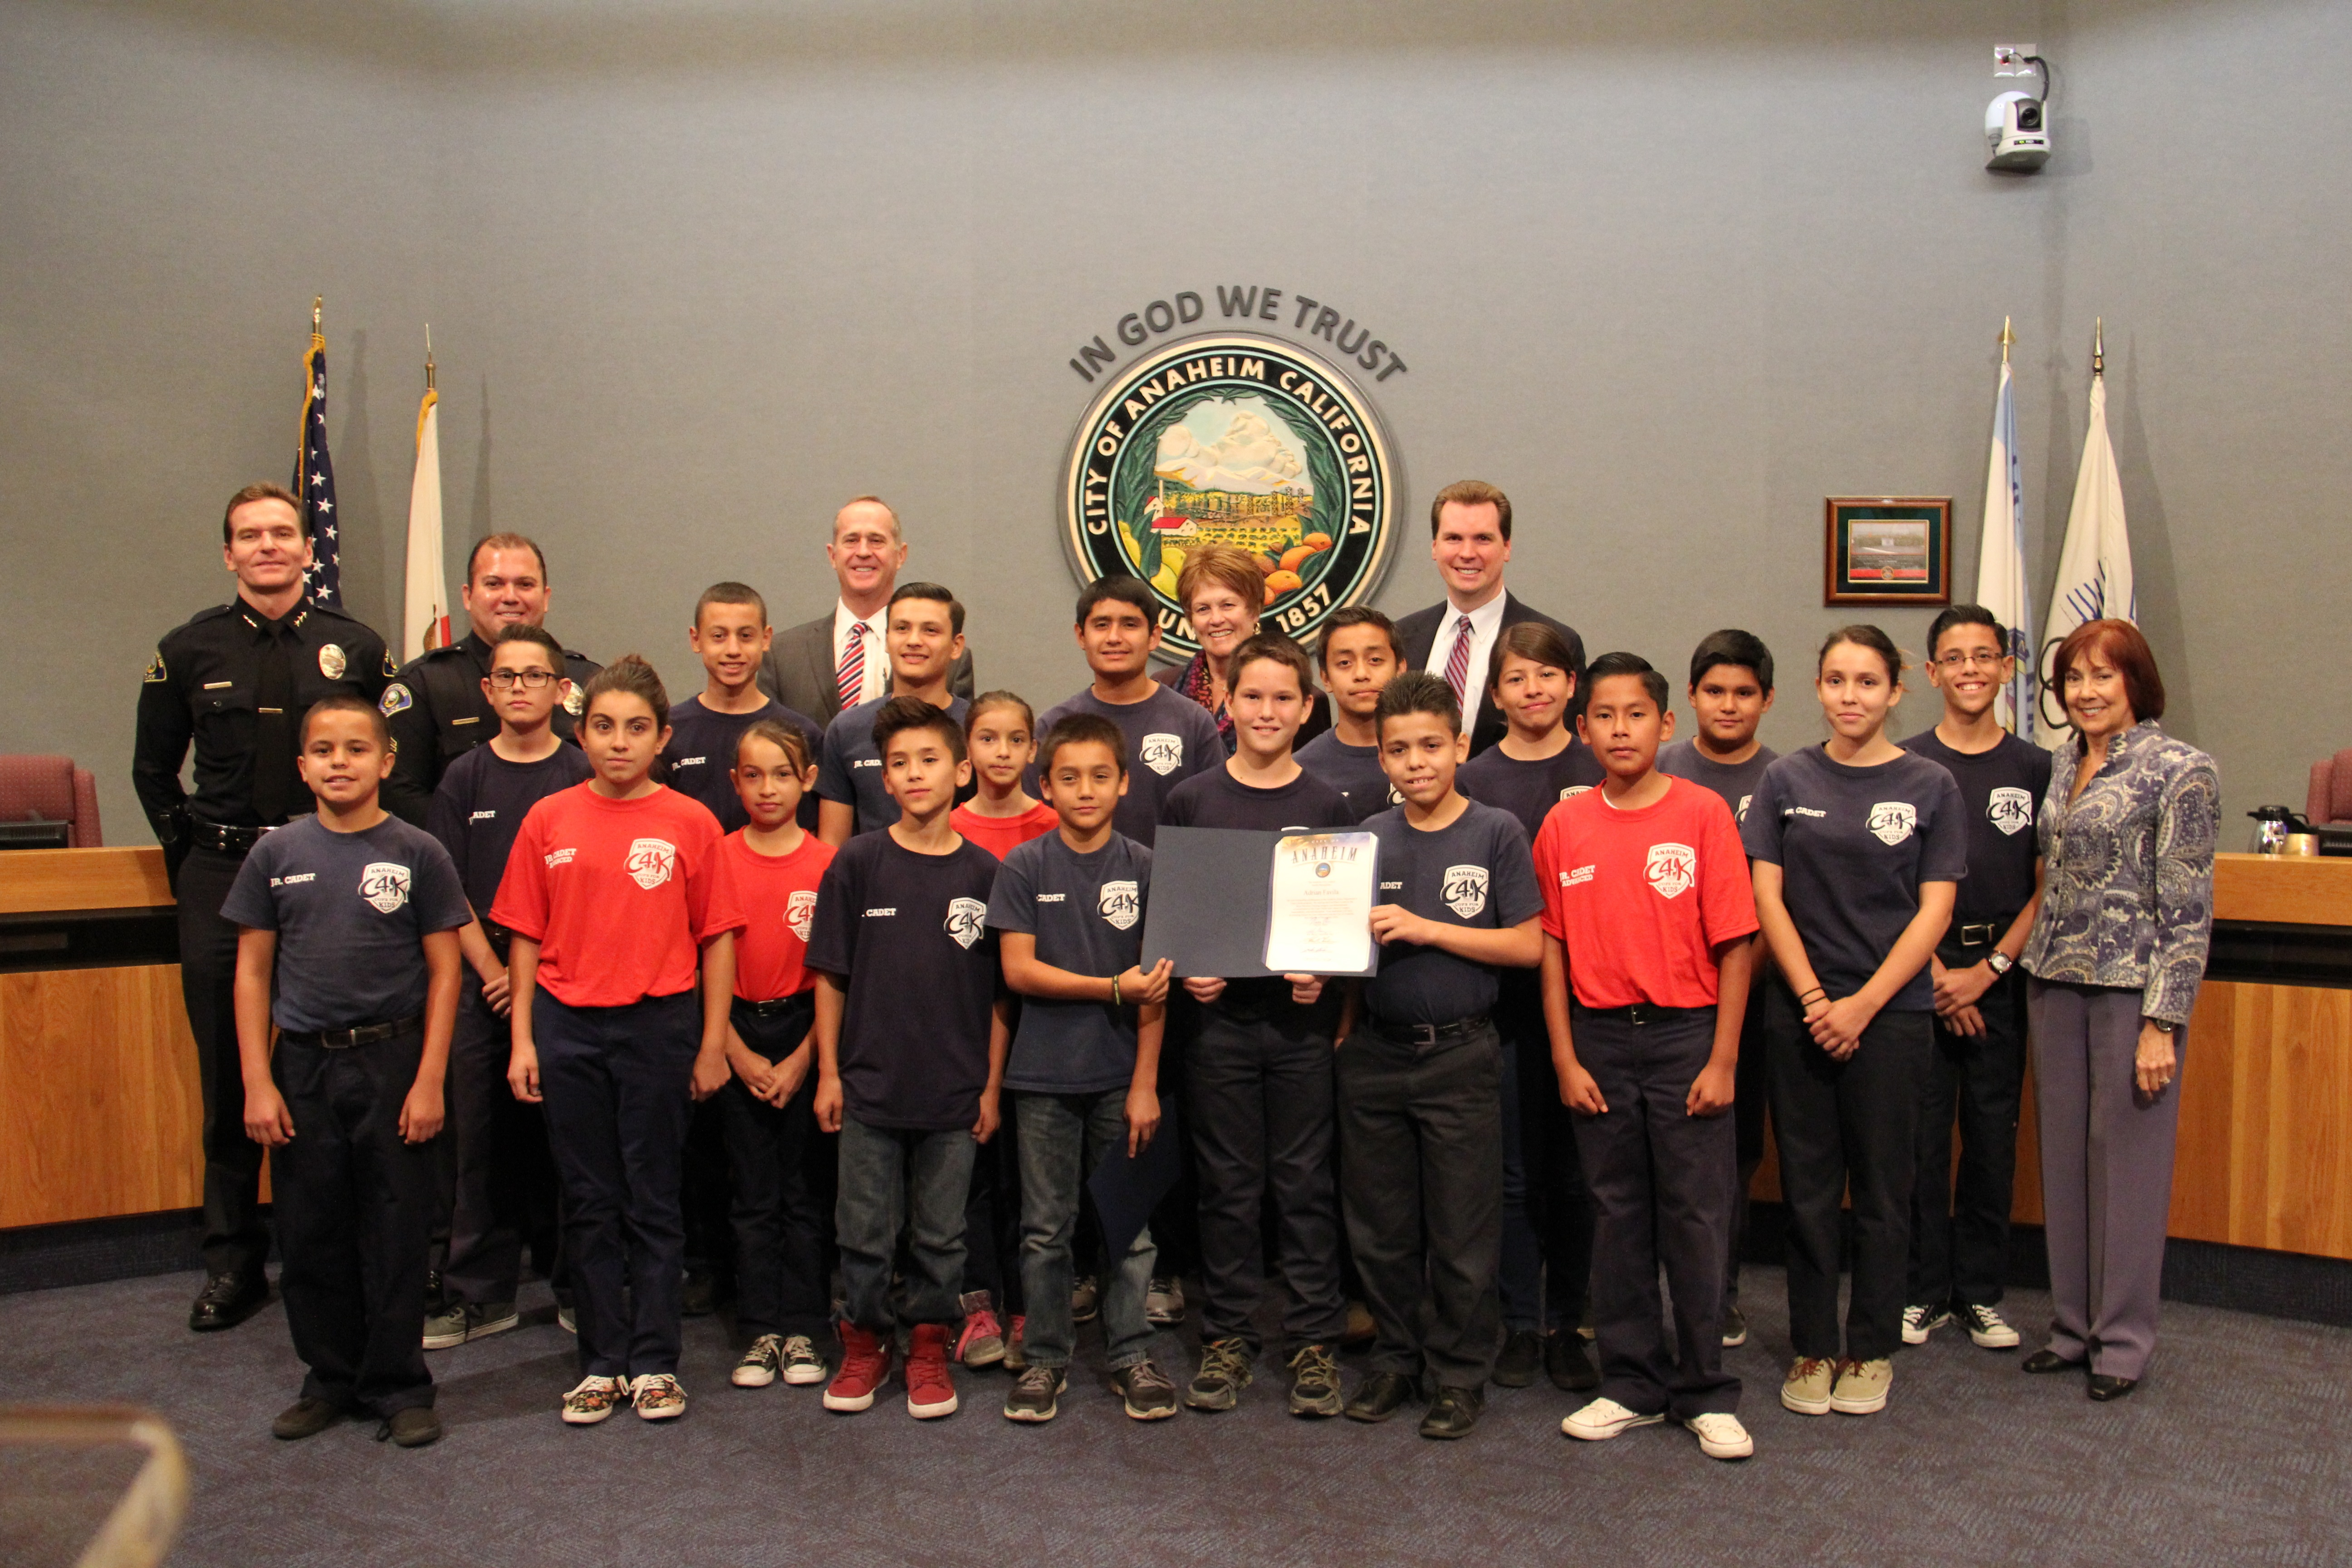 City Council photo with Councilmembers, Police Officer, and Jr. Cadets